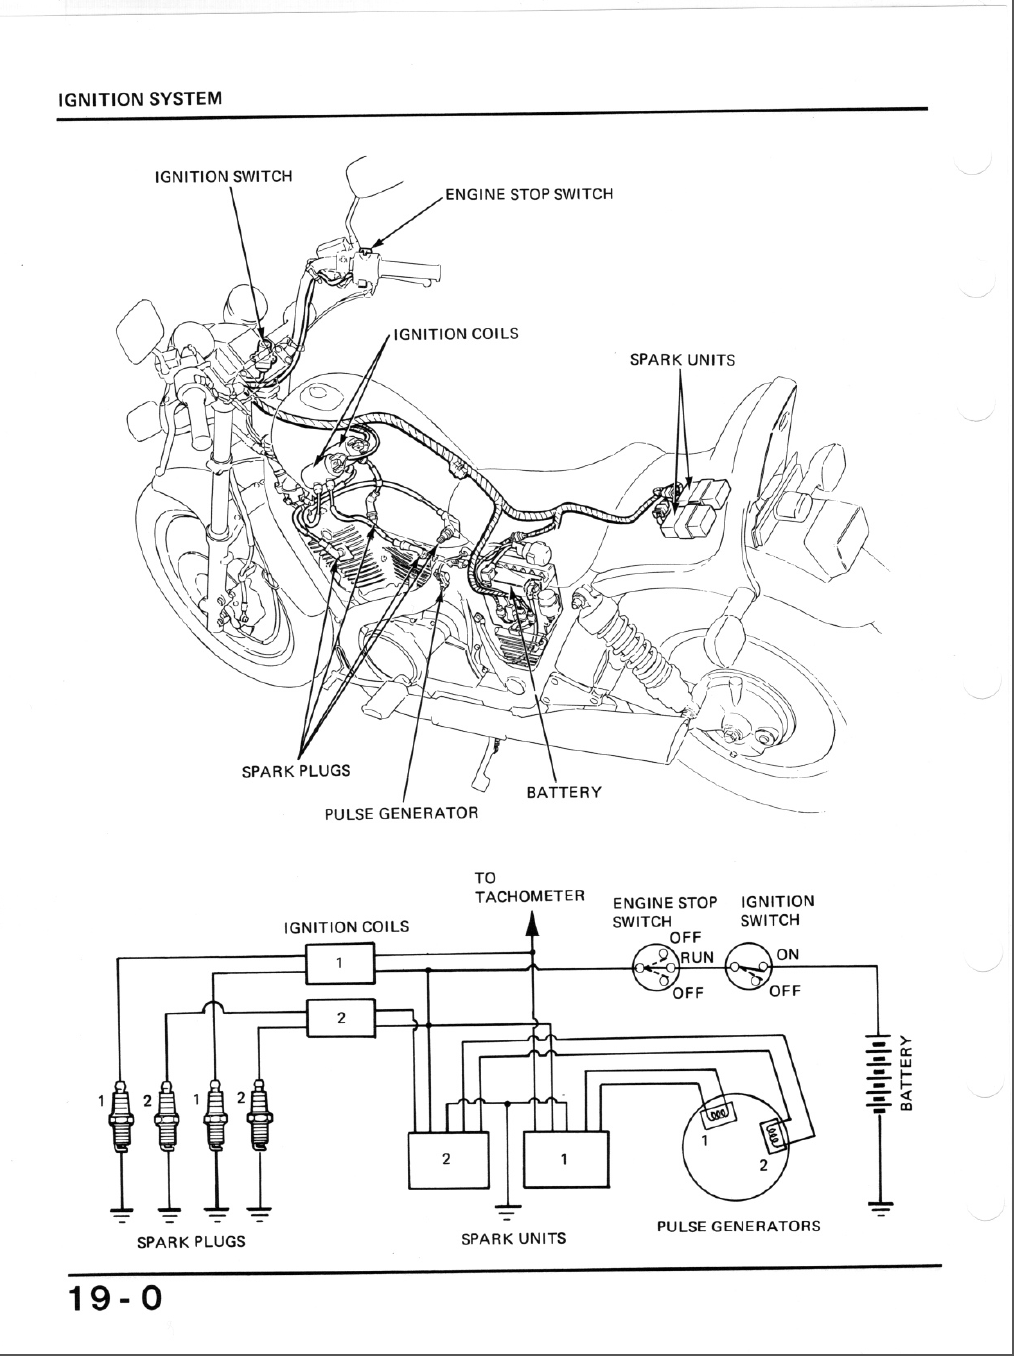 1999 honda shadow 1100 spirit wiring diagram   44 wiring diagram images